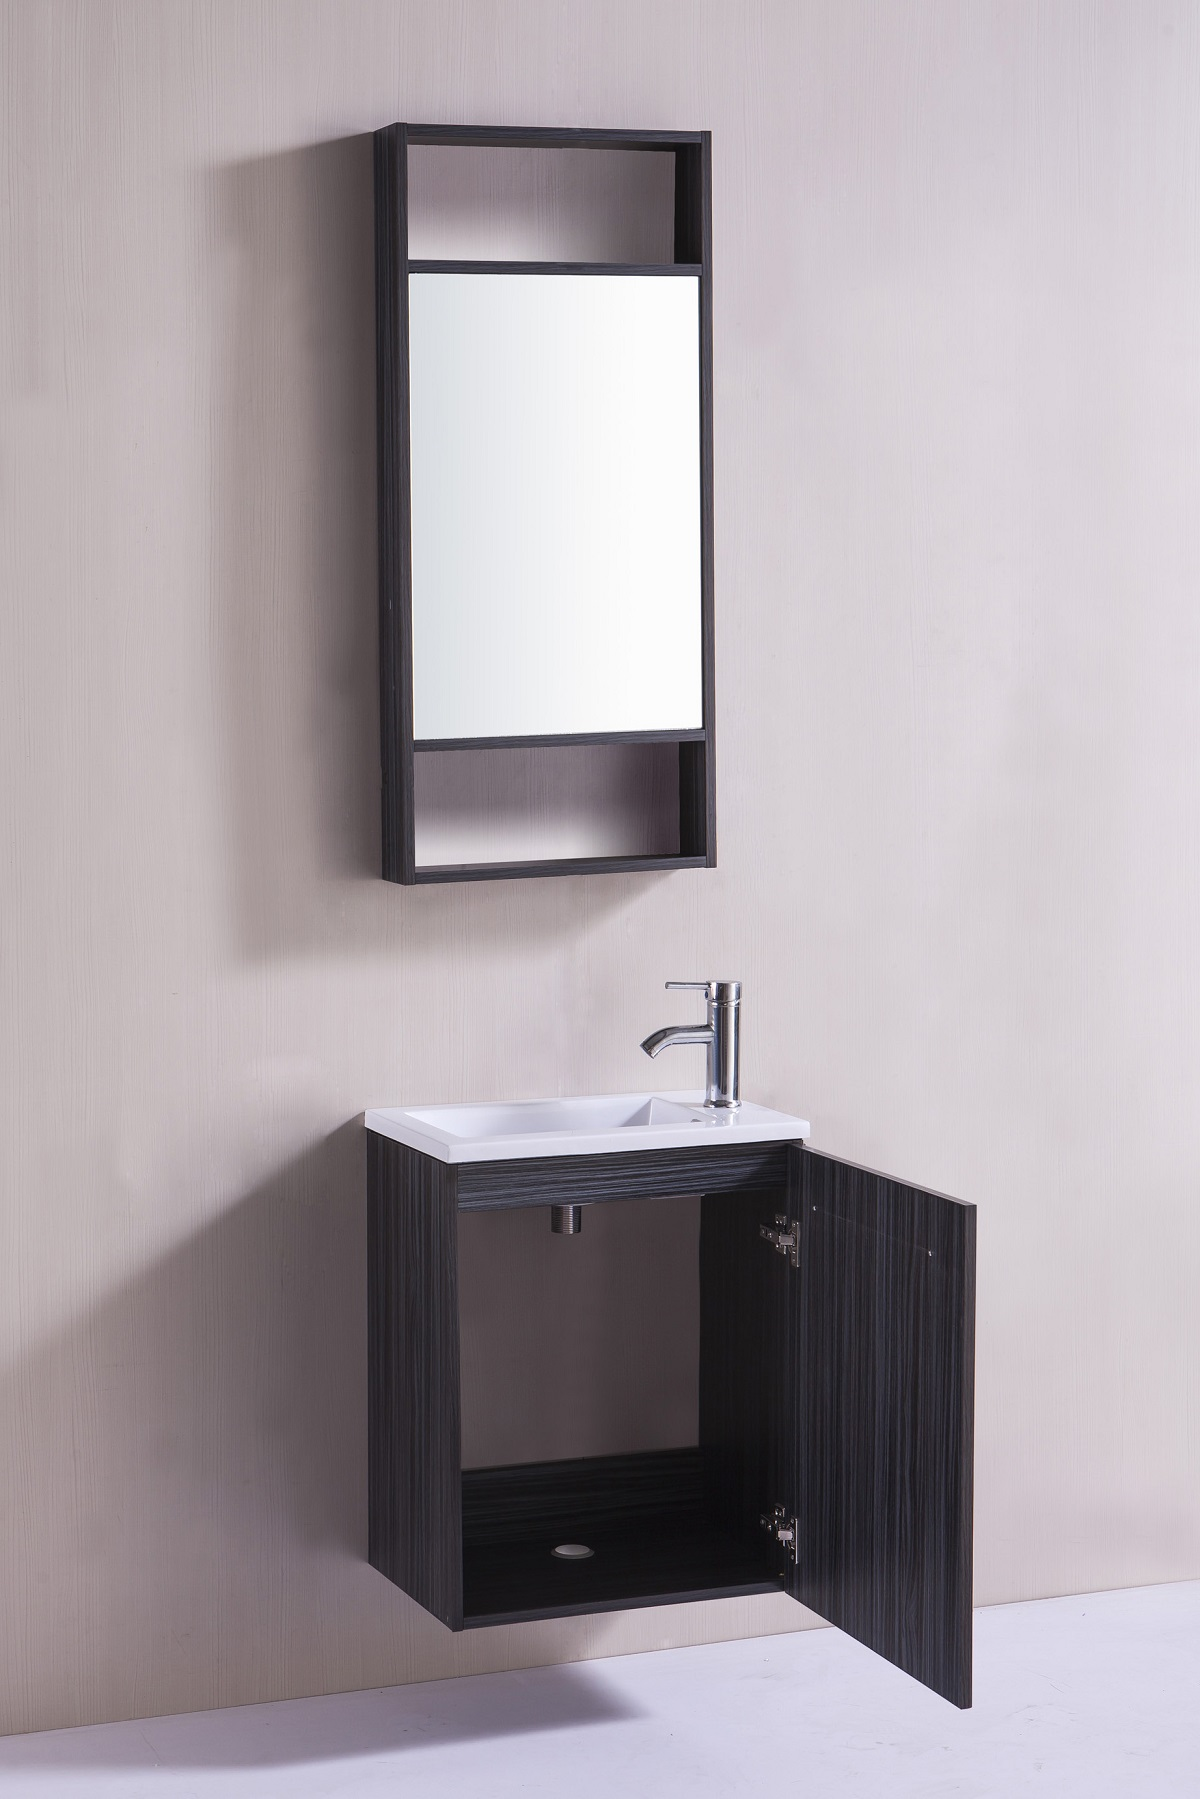 meuble lavabo toilette sanifun marco 50 ebay. Black Bedroom Furniture Sets. Home Design Ideas